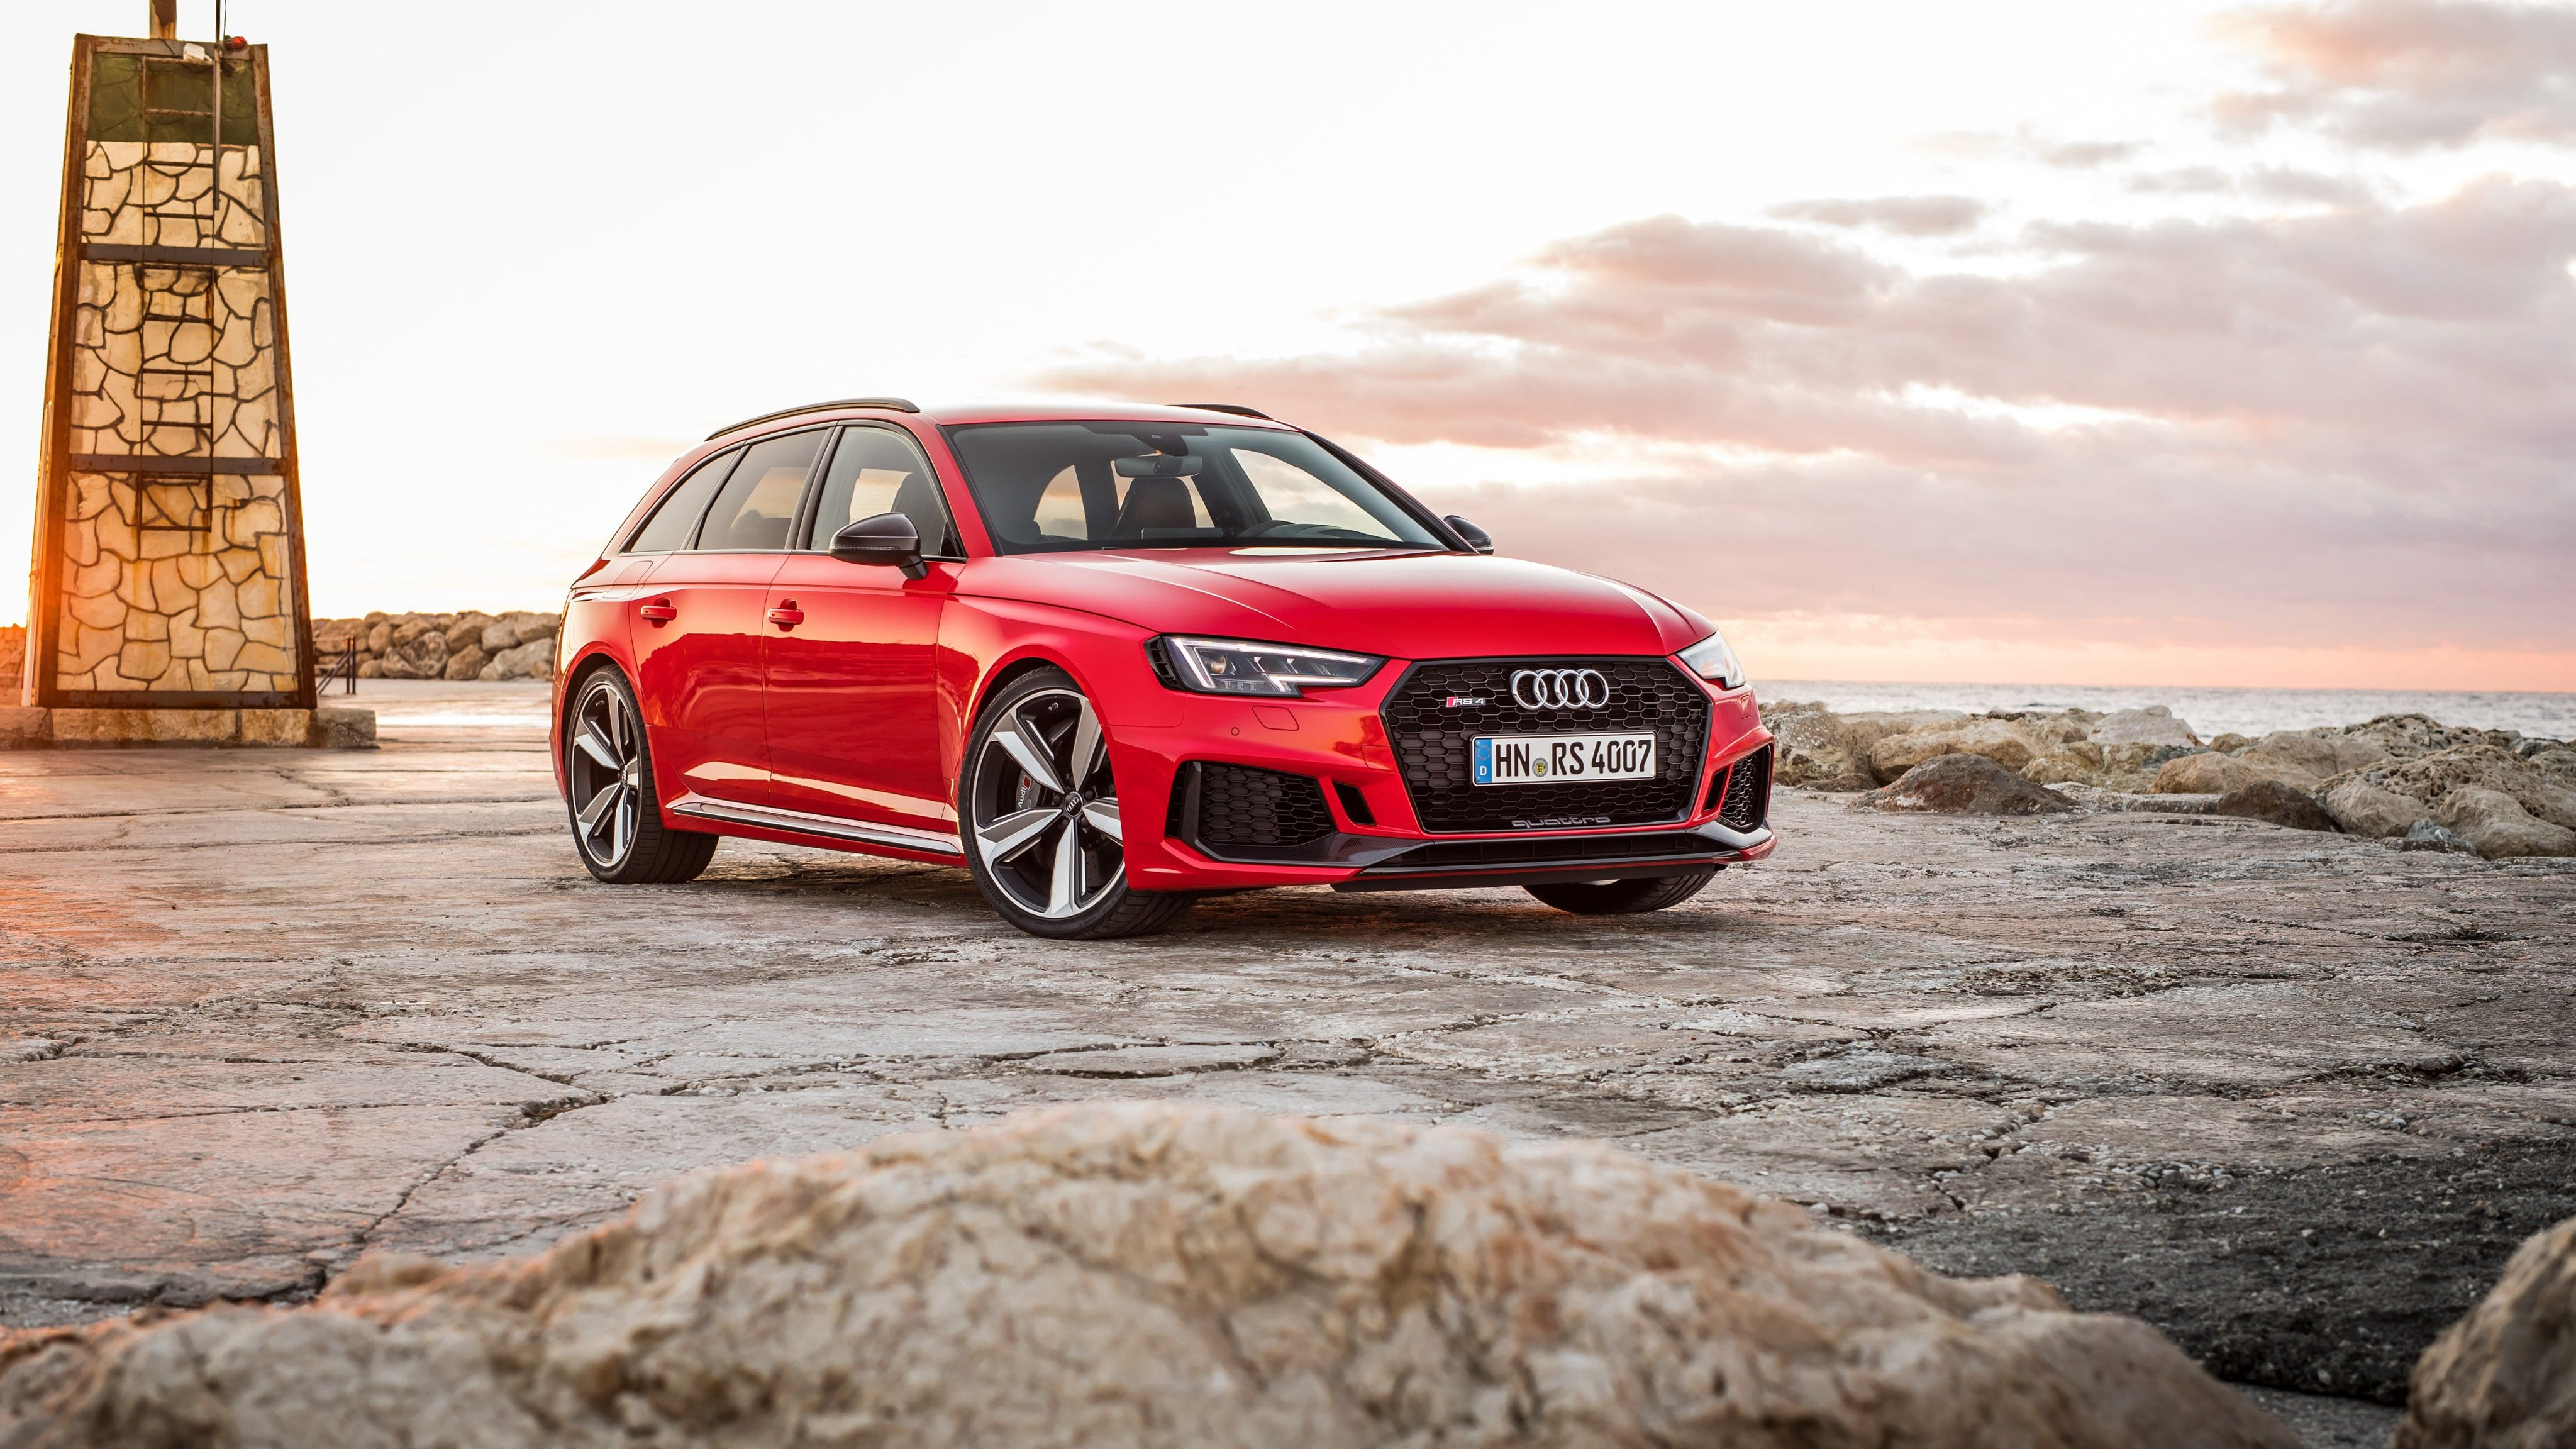 Red Audi Avant 2018 4k Red Audi Avant 2018 4k Is An Hd Desktop Wallpaper Posted In Our Free Image Collection Of Awesome Wal Audi Rs4 Avant Audi Rs4 Rs4 Avant